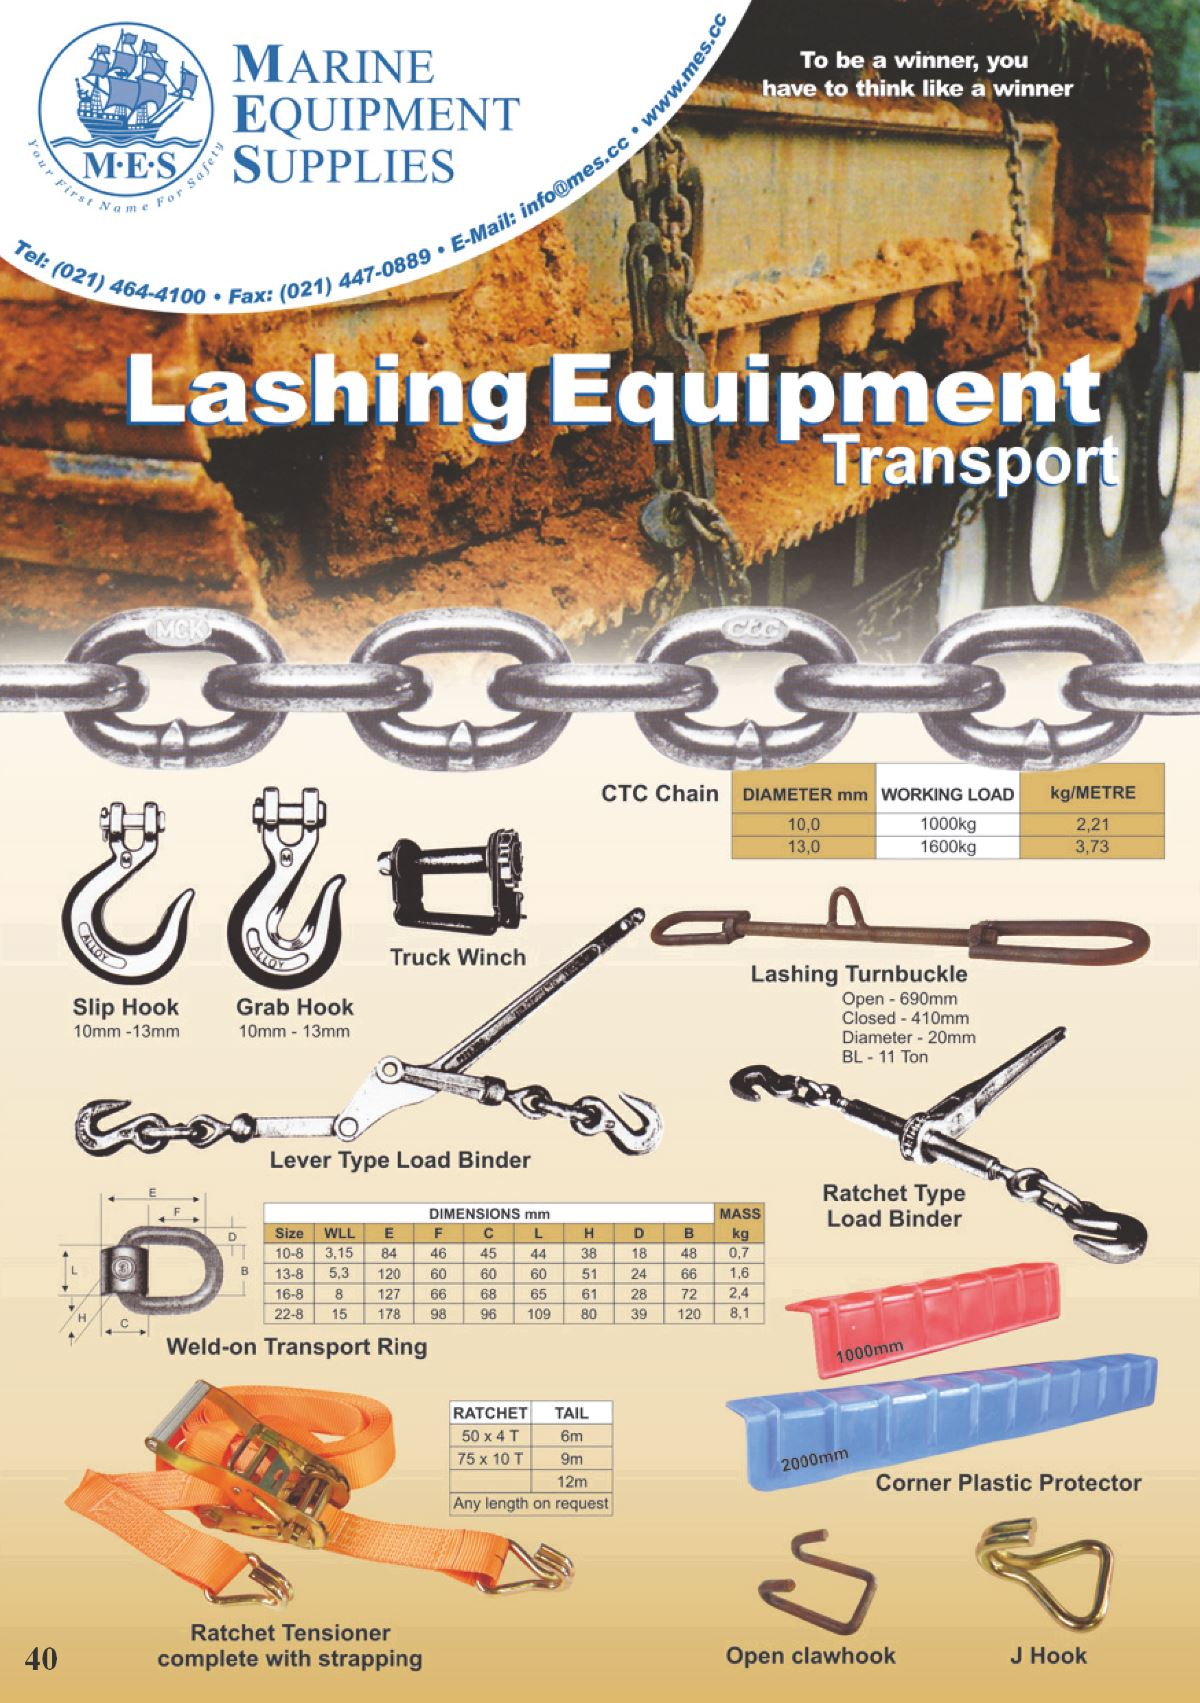 Marine Lashing Equipment